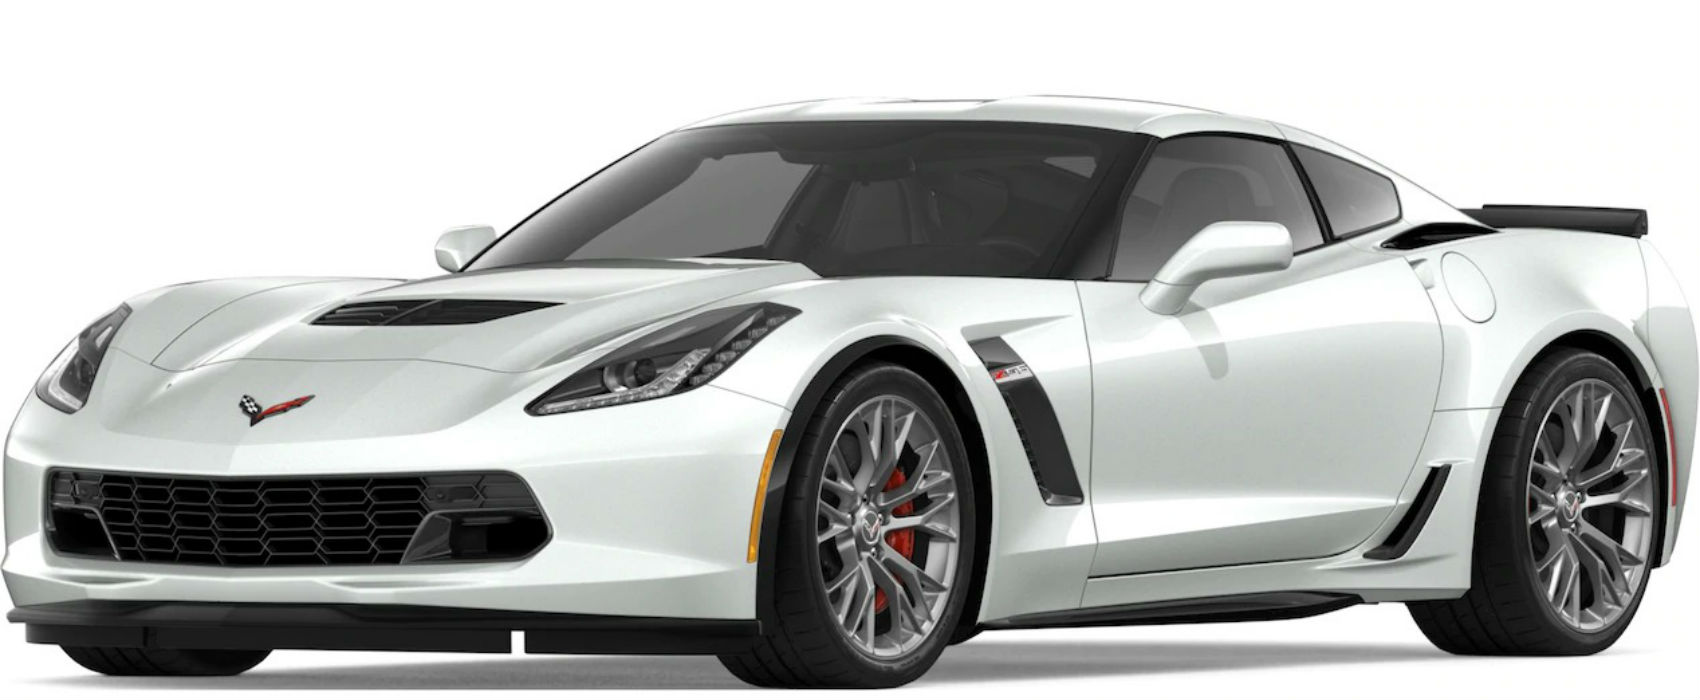 What are the Color Options for the 2019 Chevrolet Corvette?